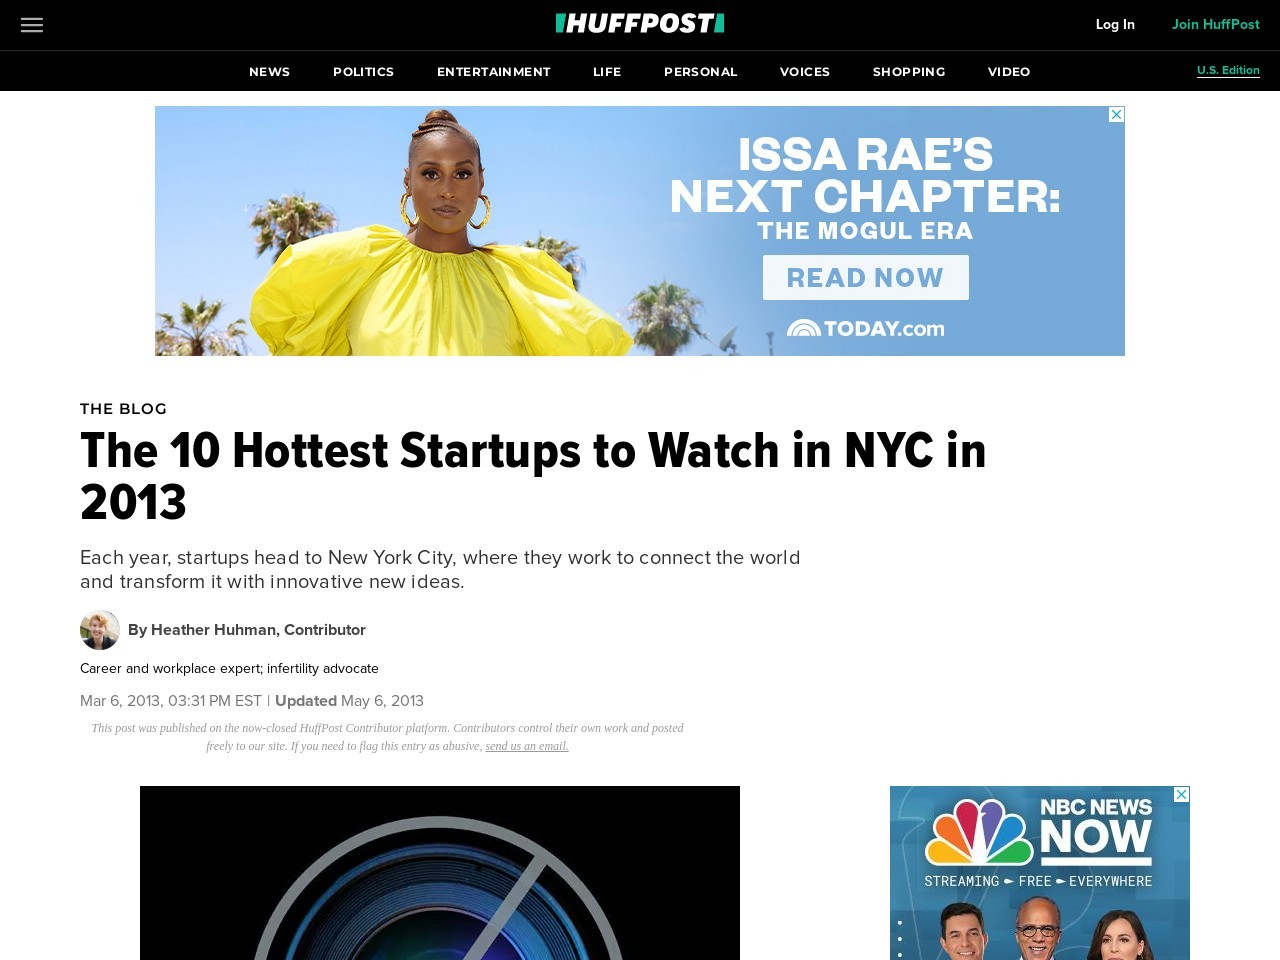 The 10 Hottest Startups to Watch in NYC in 2013